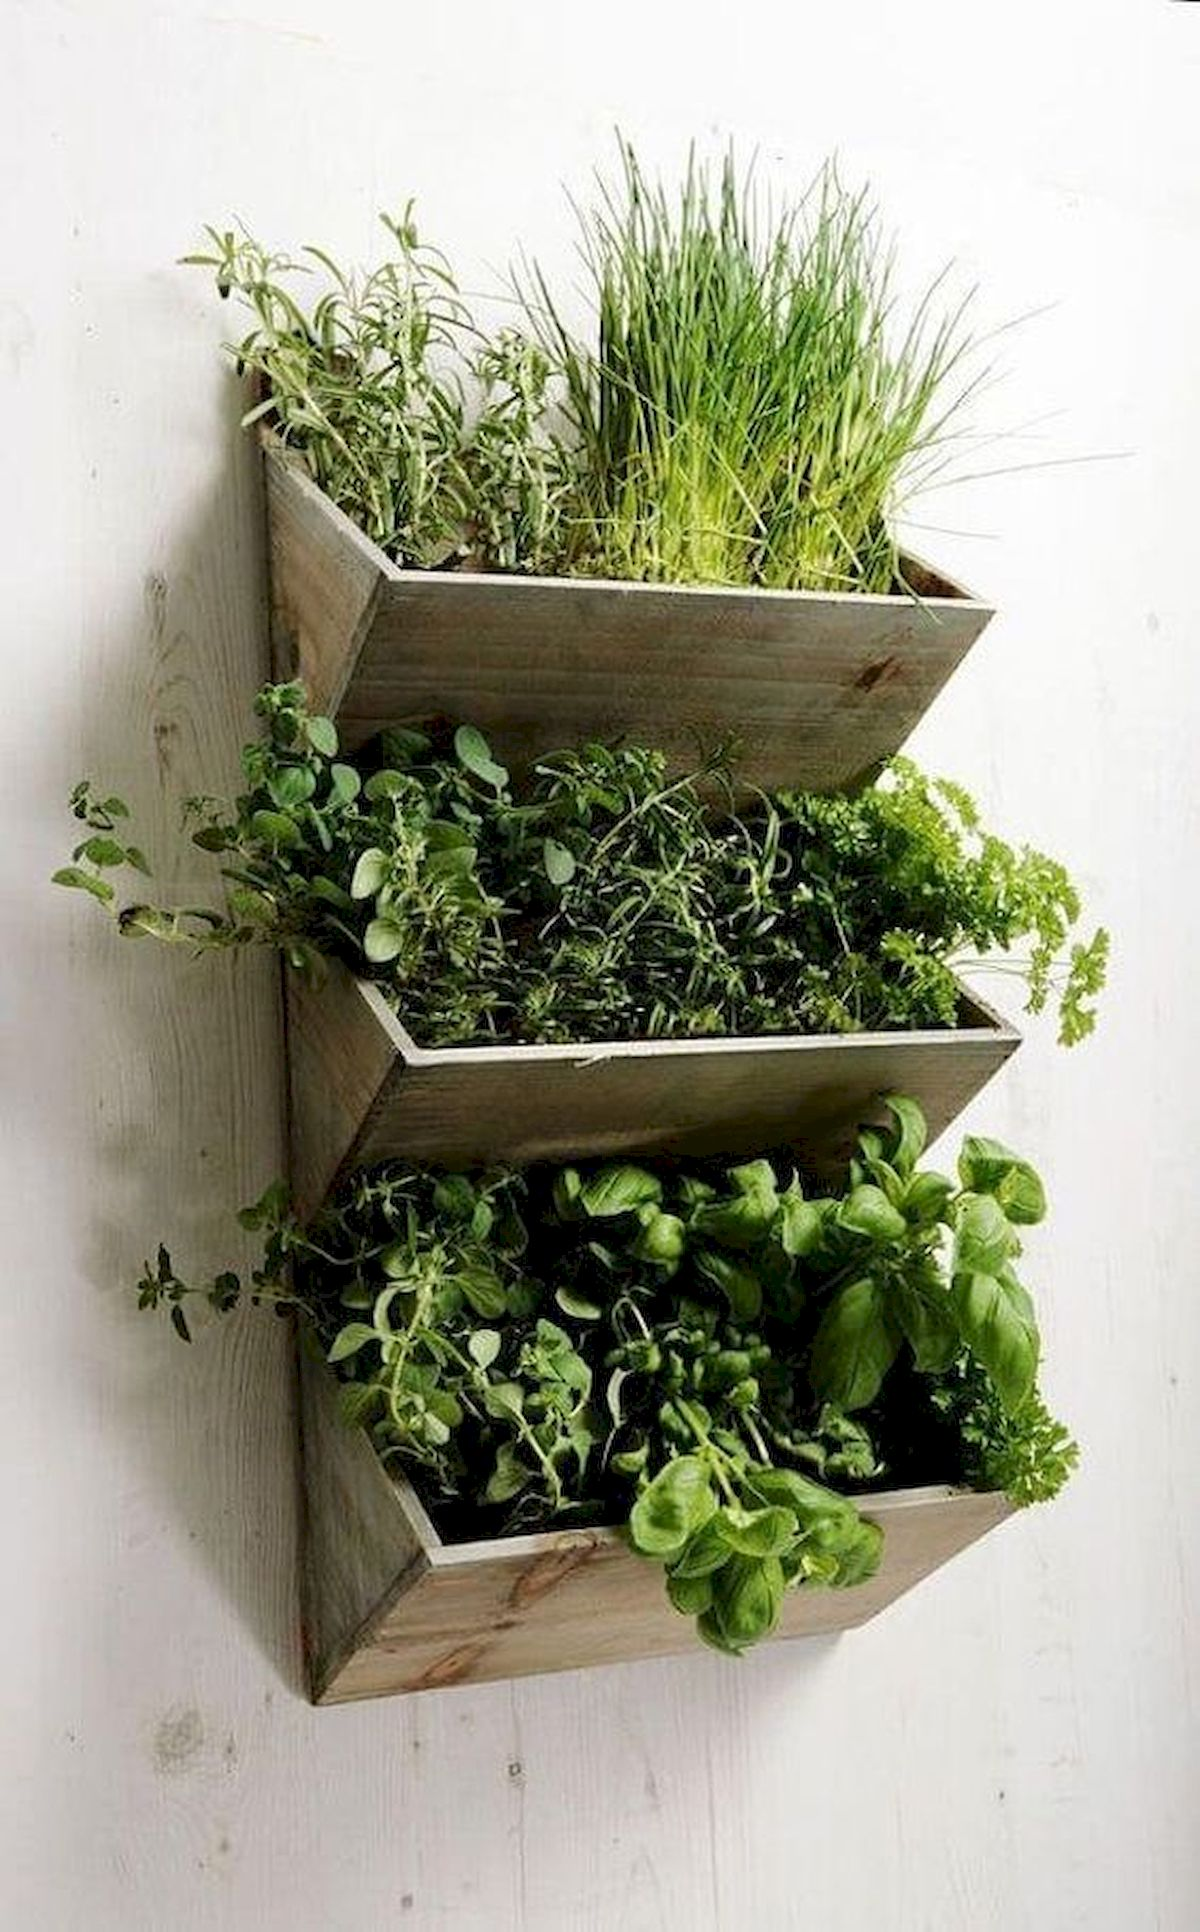 44 Fantastic Vertical Garden Ideas To Make Your Home Beautiful (12)